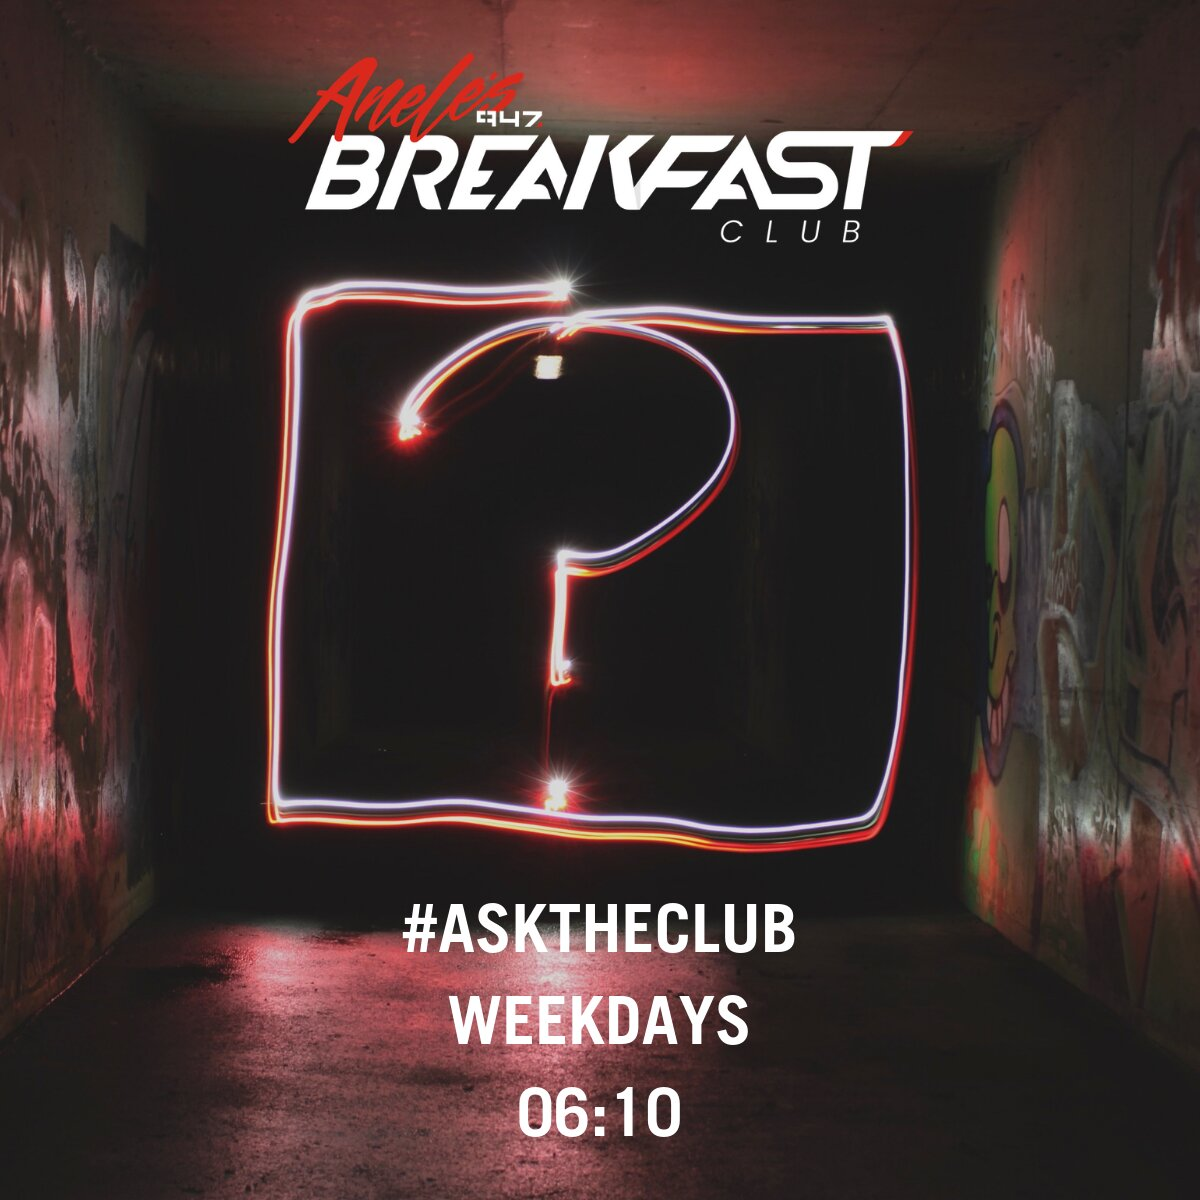 Ask The Club - What do you think about the new Bachelor?